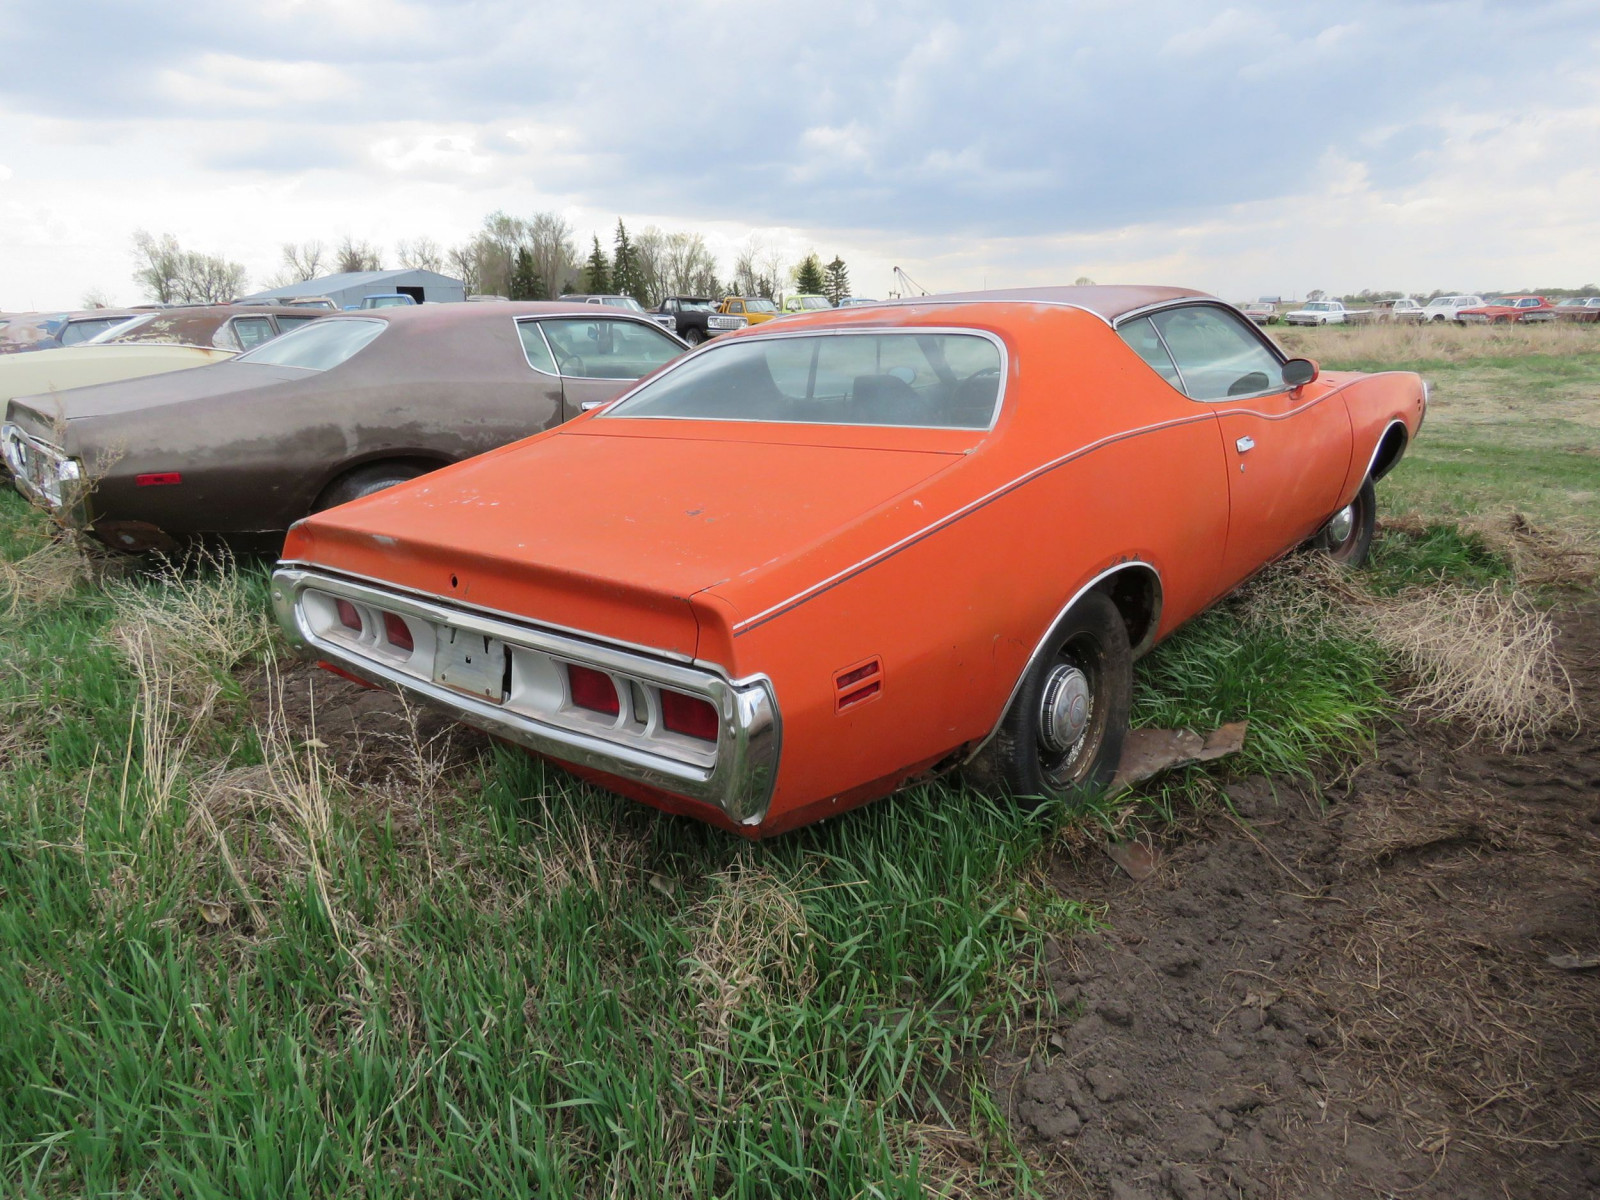 1971 Dodge Charger Coupe - Image 5